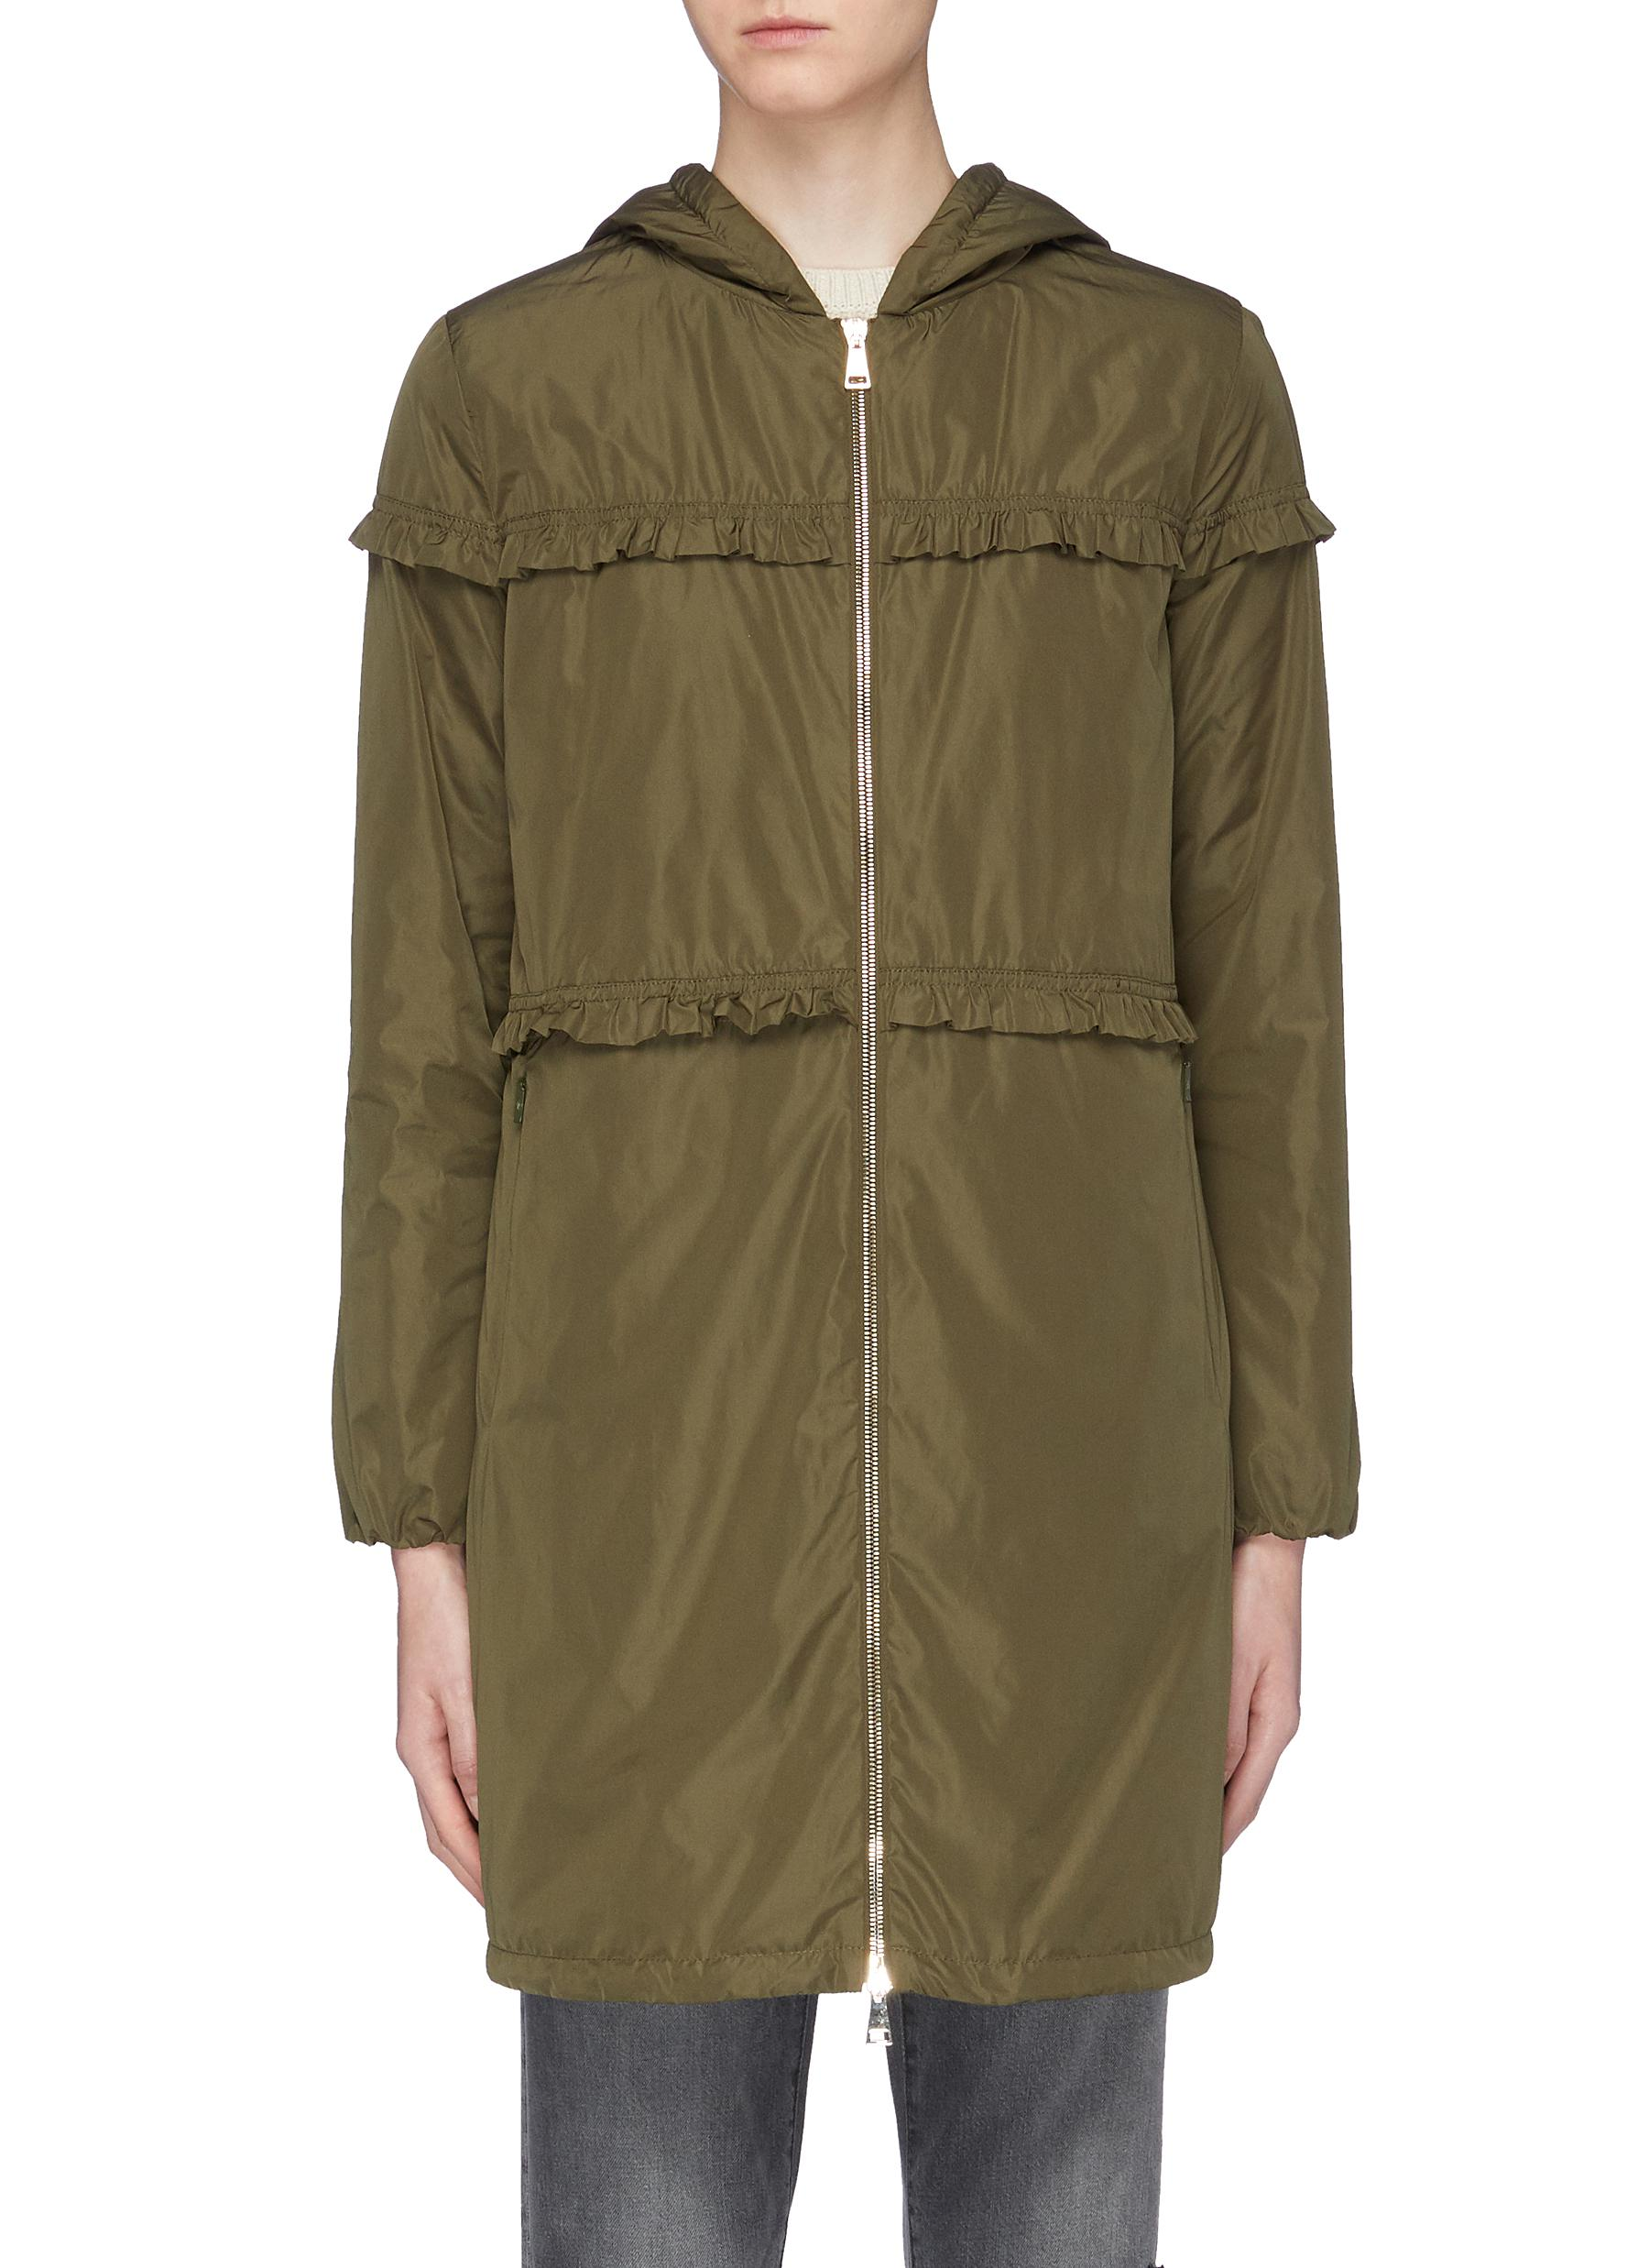 ccc95f33f5a9 Main View - Click To Enlarge - Moncler -  Luxembourg  ruffle trim hooded  down